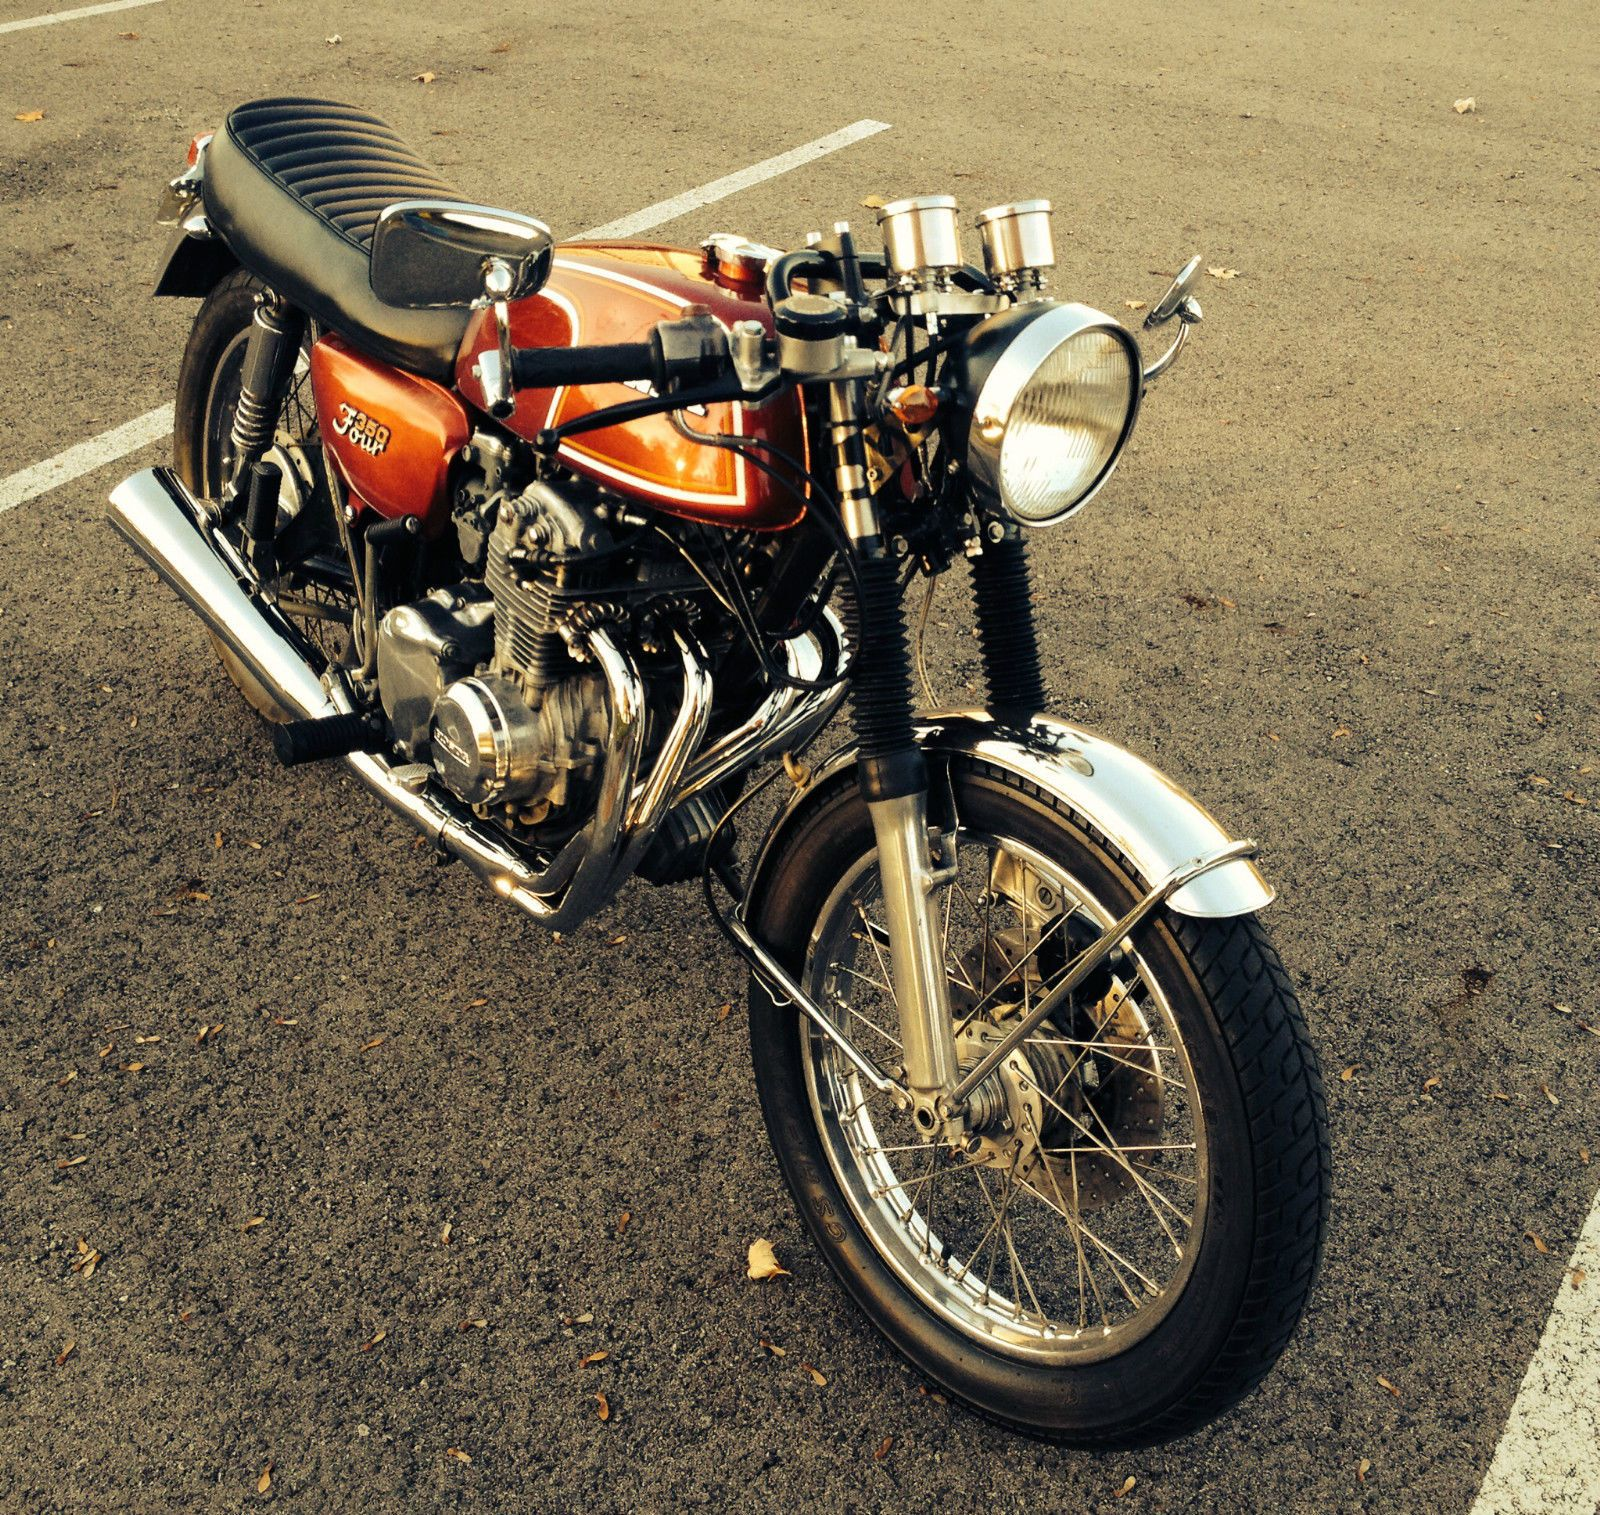 For Those Of You Looking A Classy Sophisticated Ride On The Cheap Cant Go Wrong With Bike Like This 1972 Honda Cafe Racer